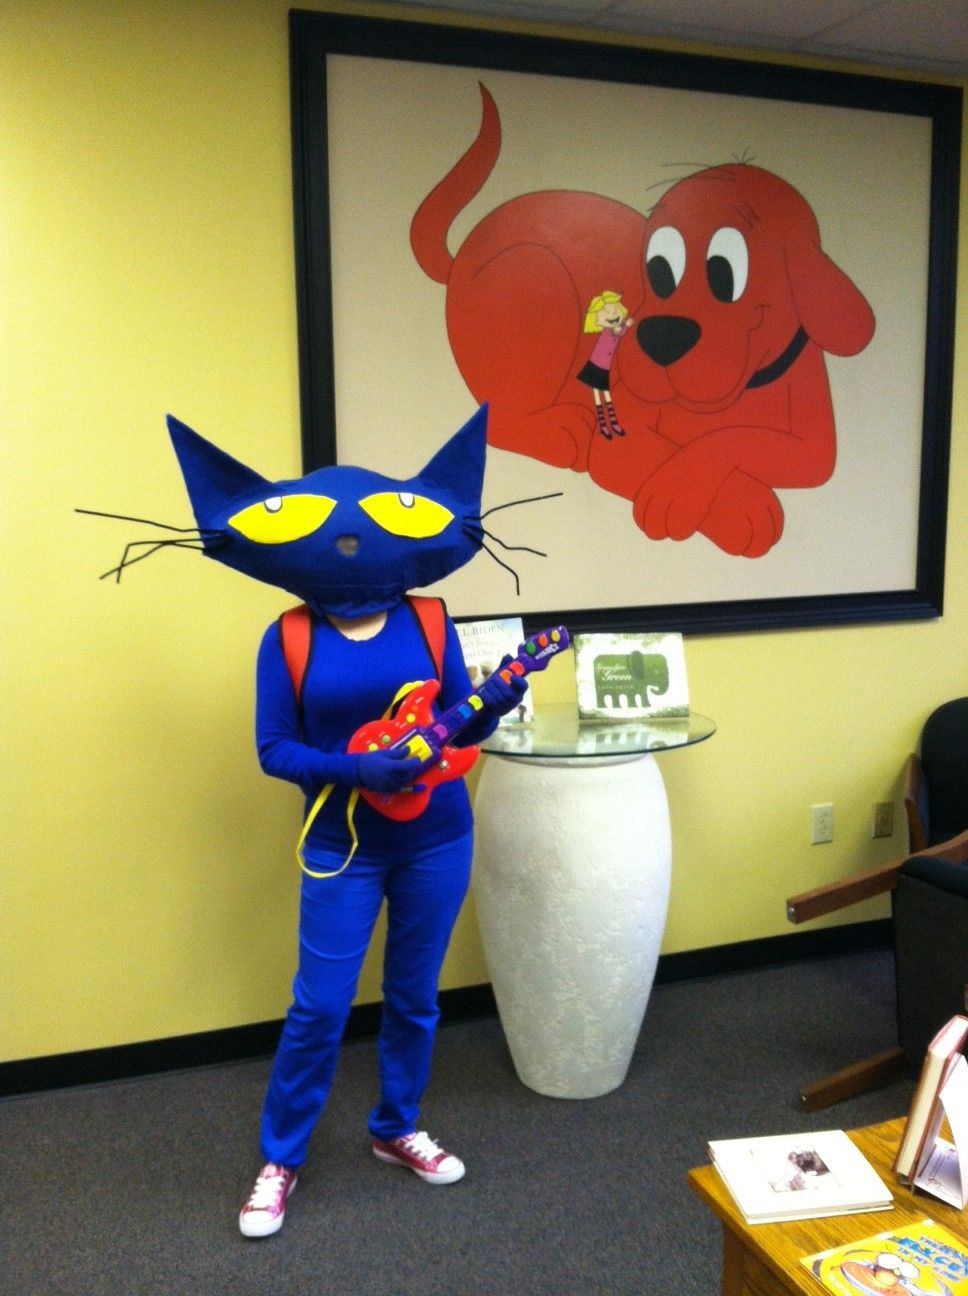 Scholastic Book Fair Employee Dressed As Pete The Cat From The